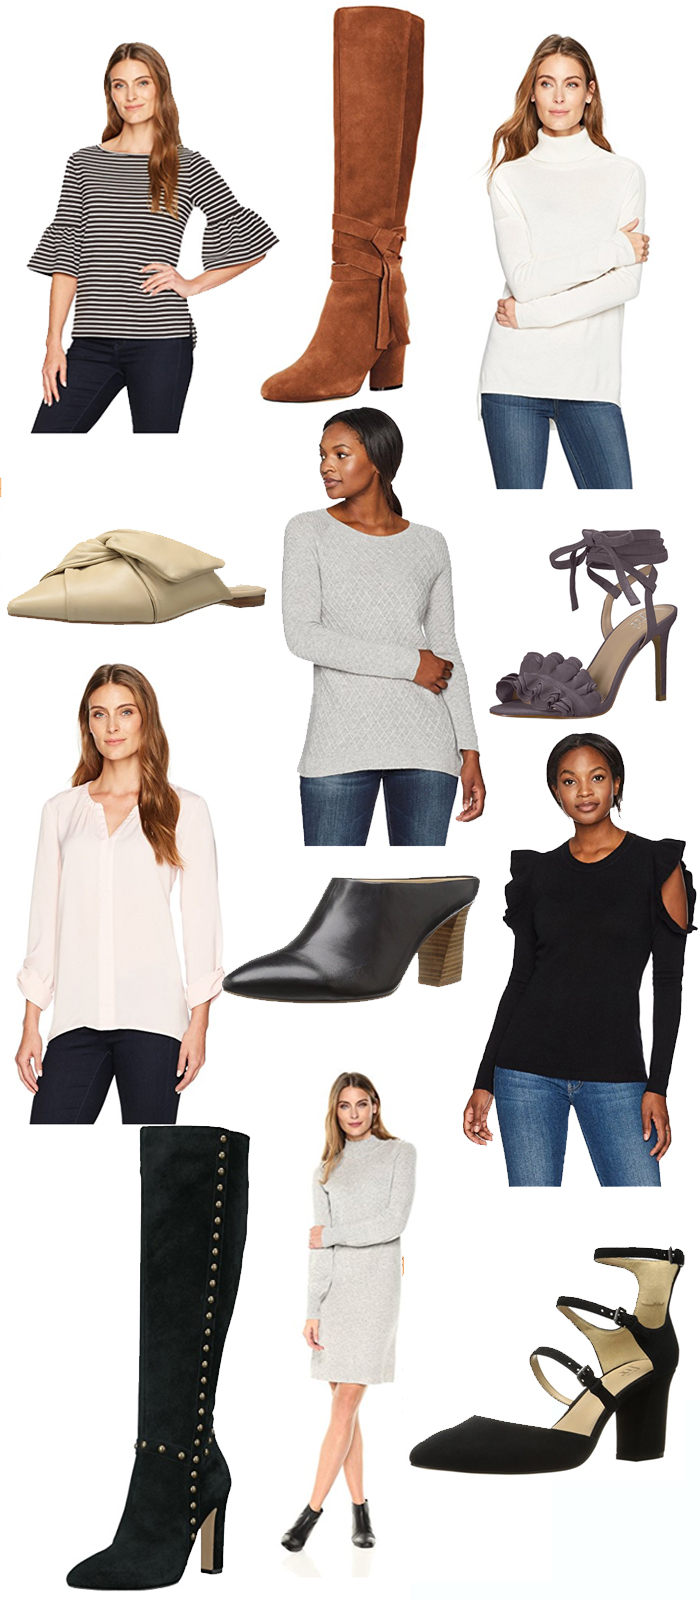 amazon fashion new brands, lark and ro, the fix shoes, booties, winter style 2017, fashion clothes, winter booties, winter fashion outfit styling, mules, bow mules, ruffles, heels